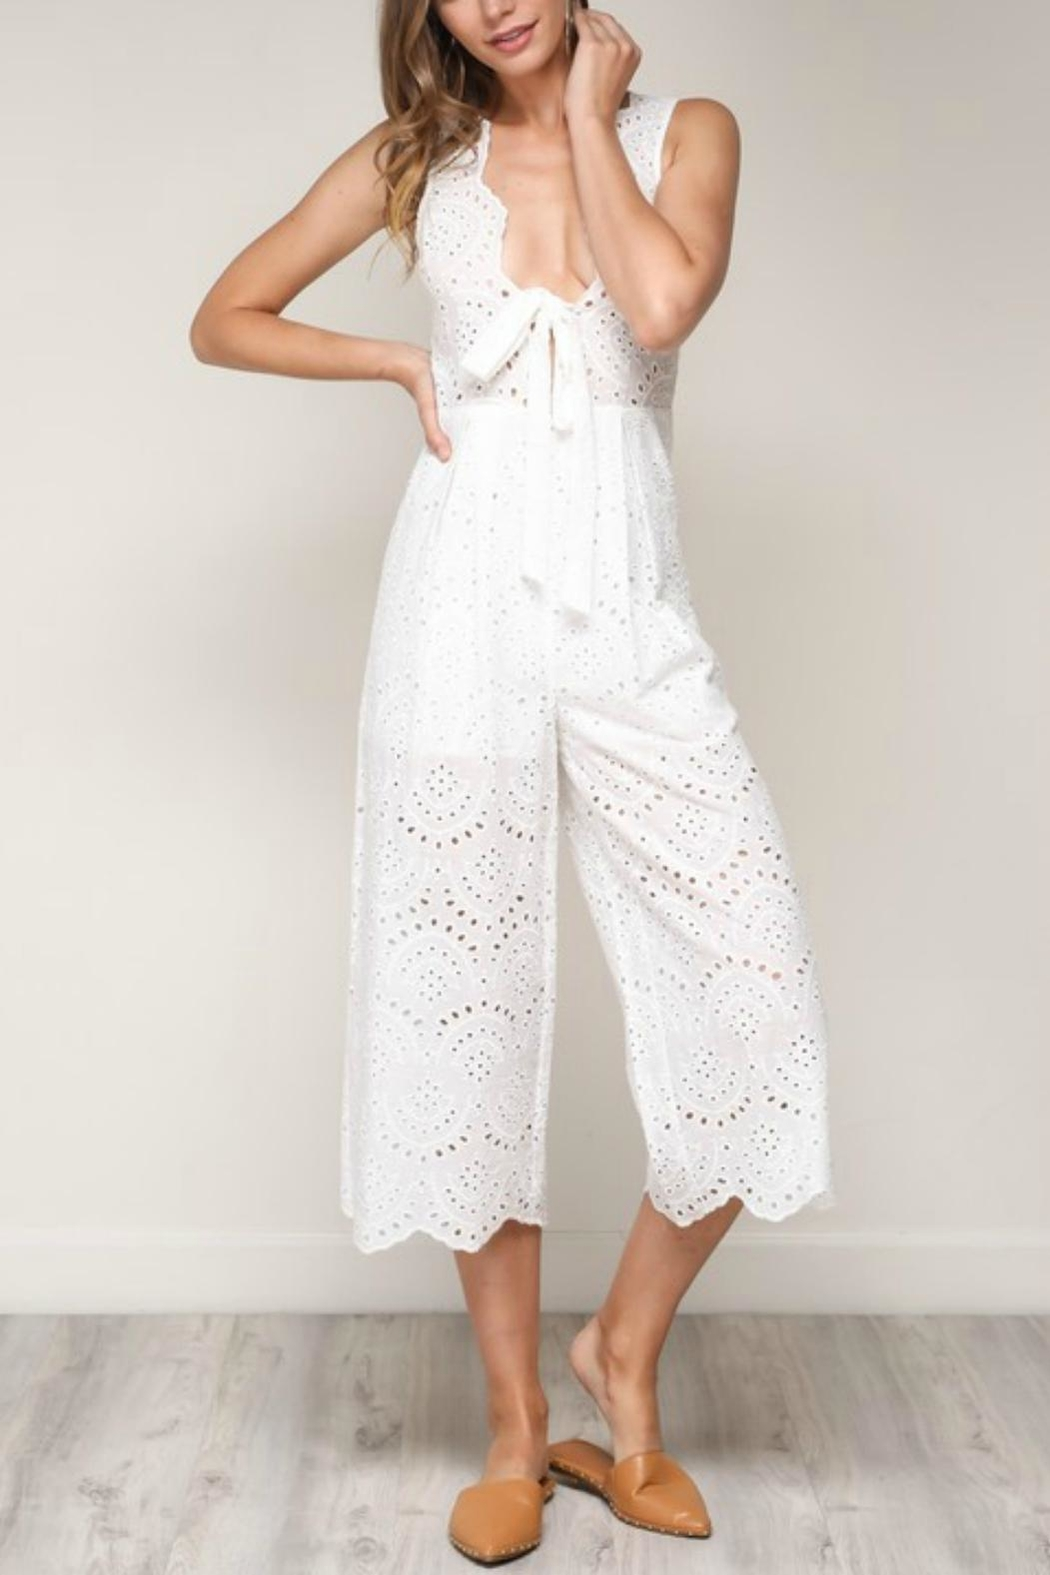 Pretty Little Things Scallop Lace Jumpsuit - Main Image